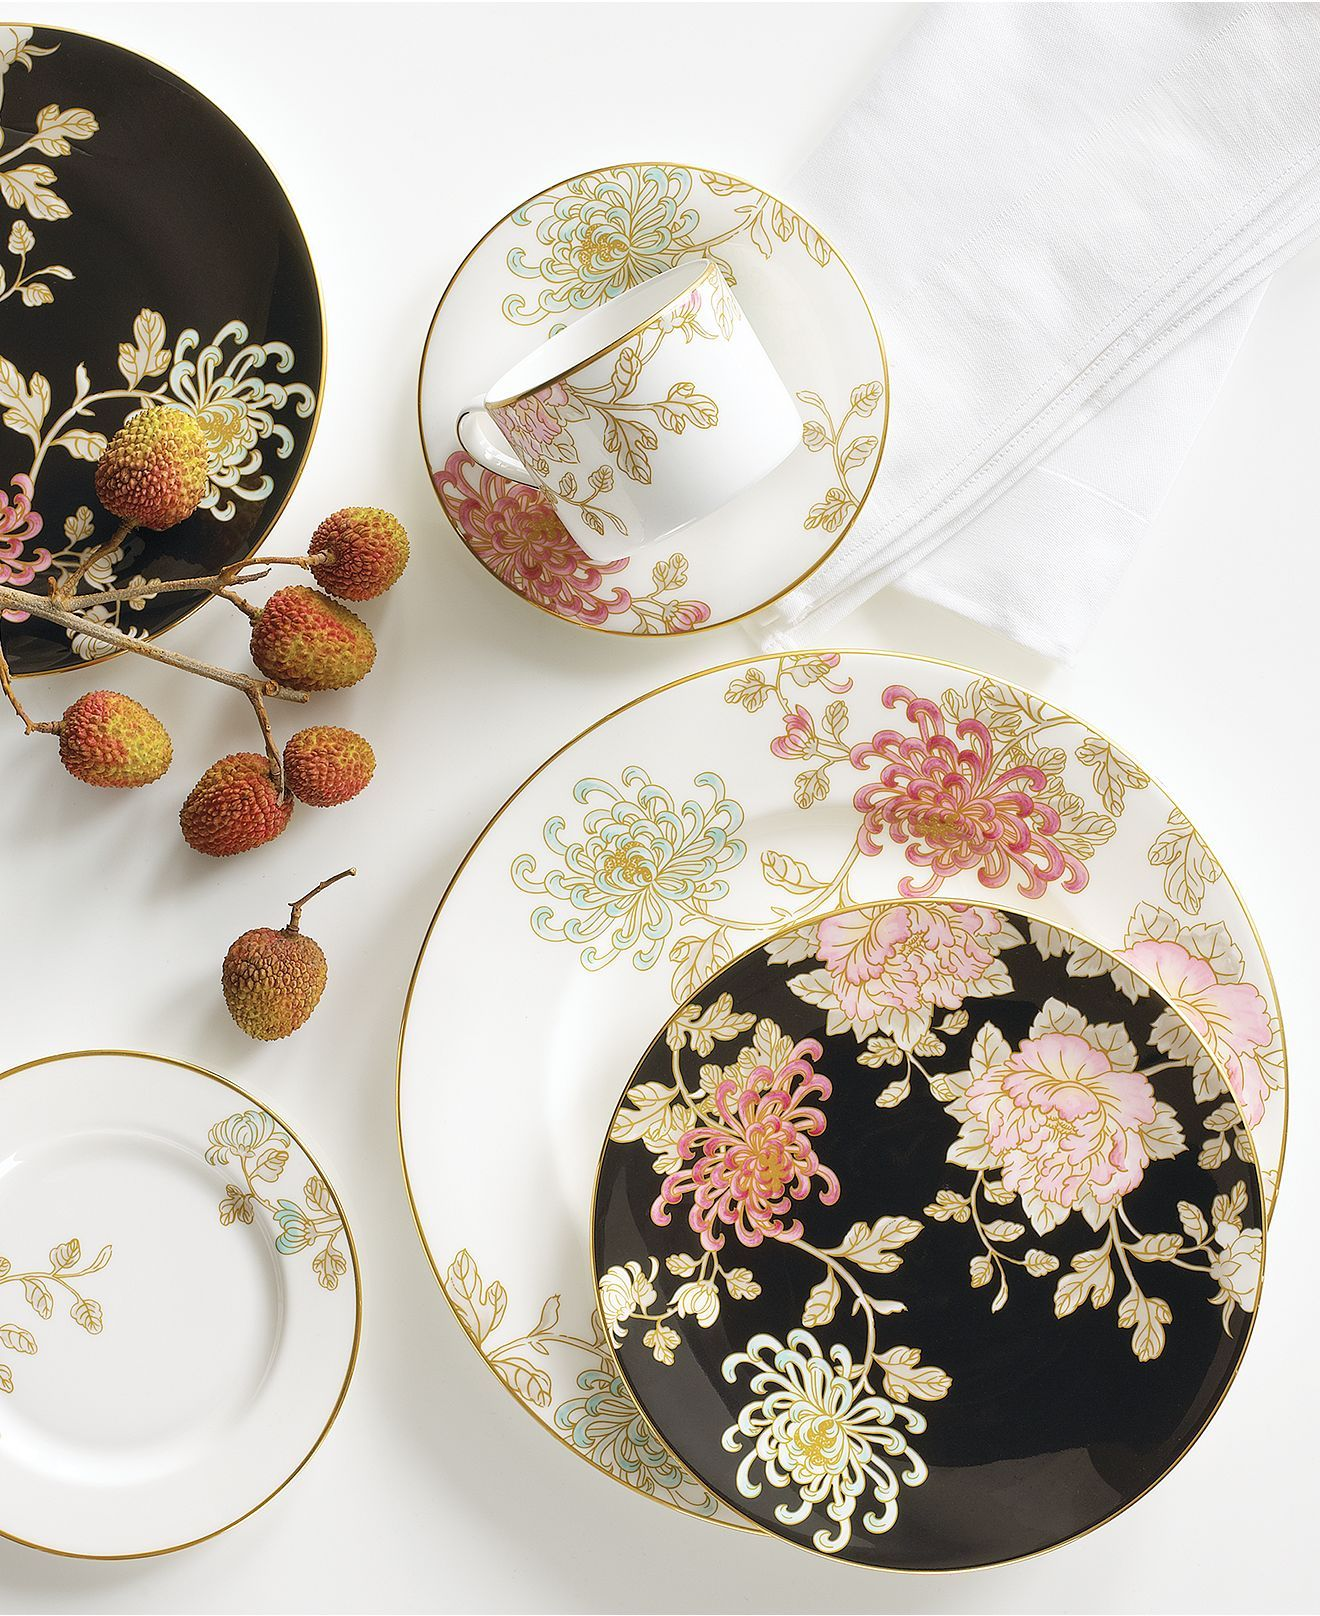 Marchesa By Lenox Dinnerware, Painted Camellia Collection